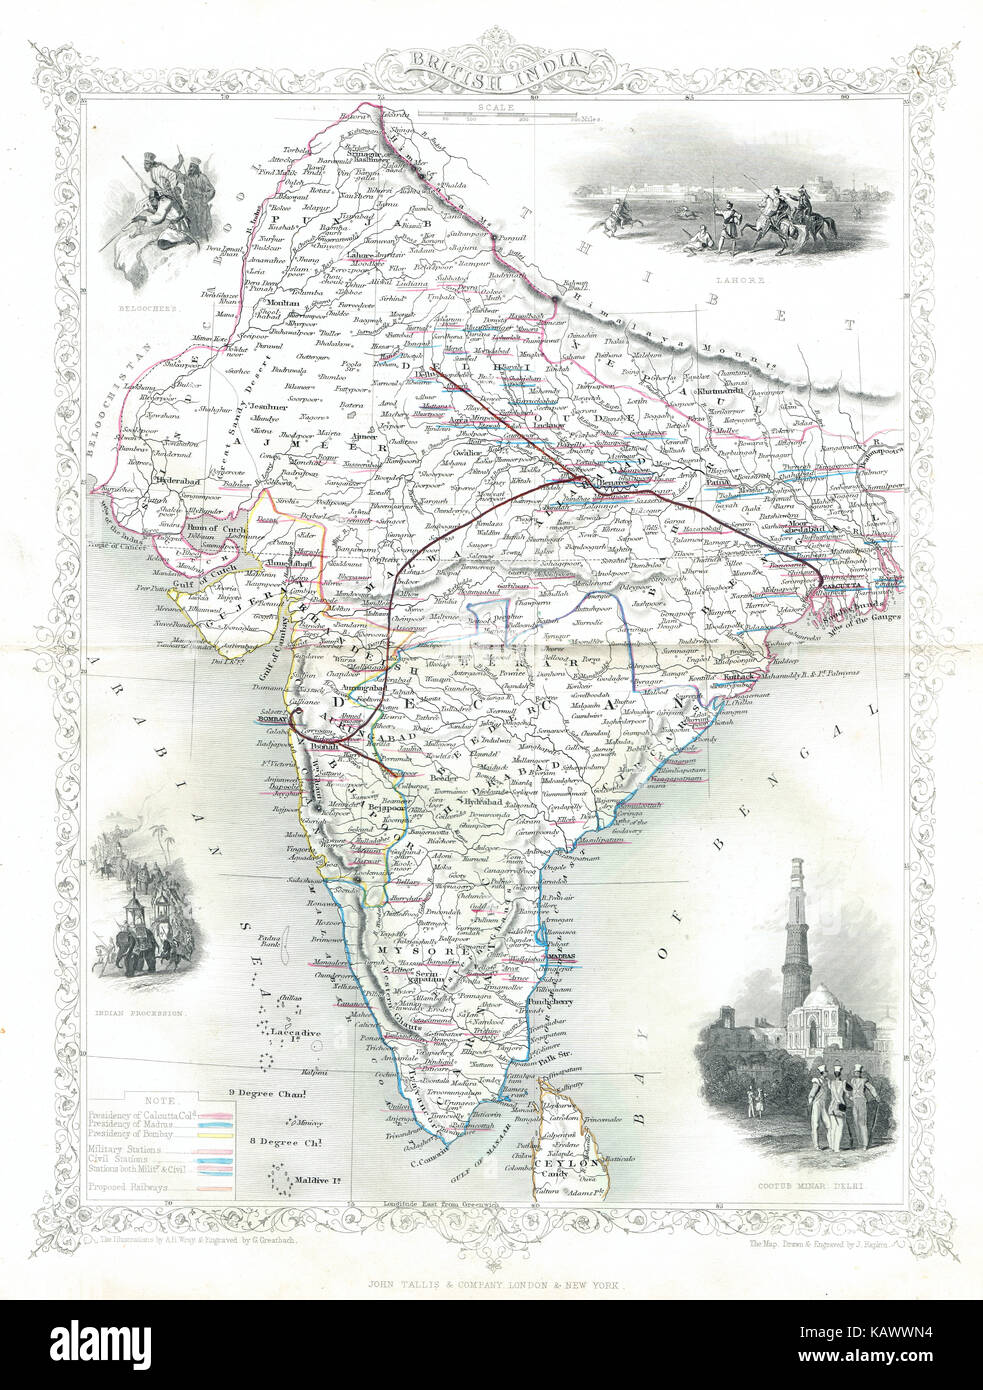 Illustrated Map of British India in the 19th Century - Stock Image